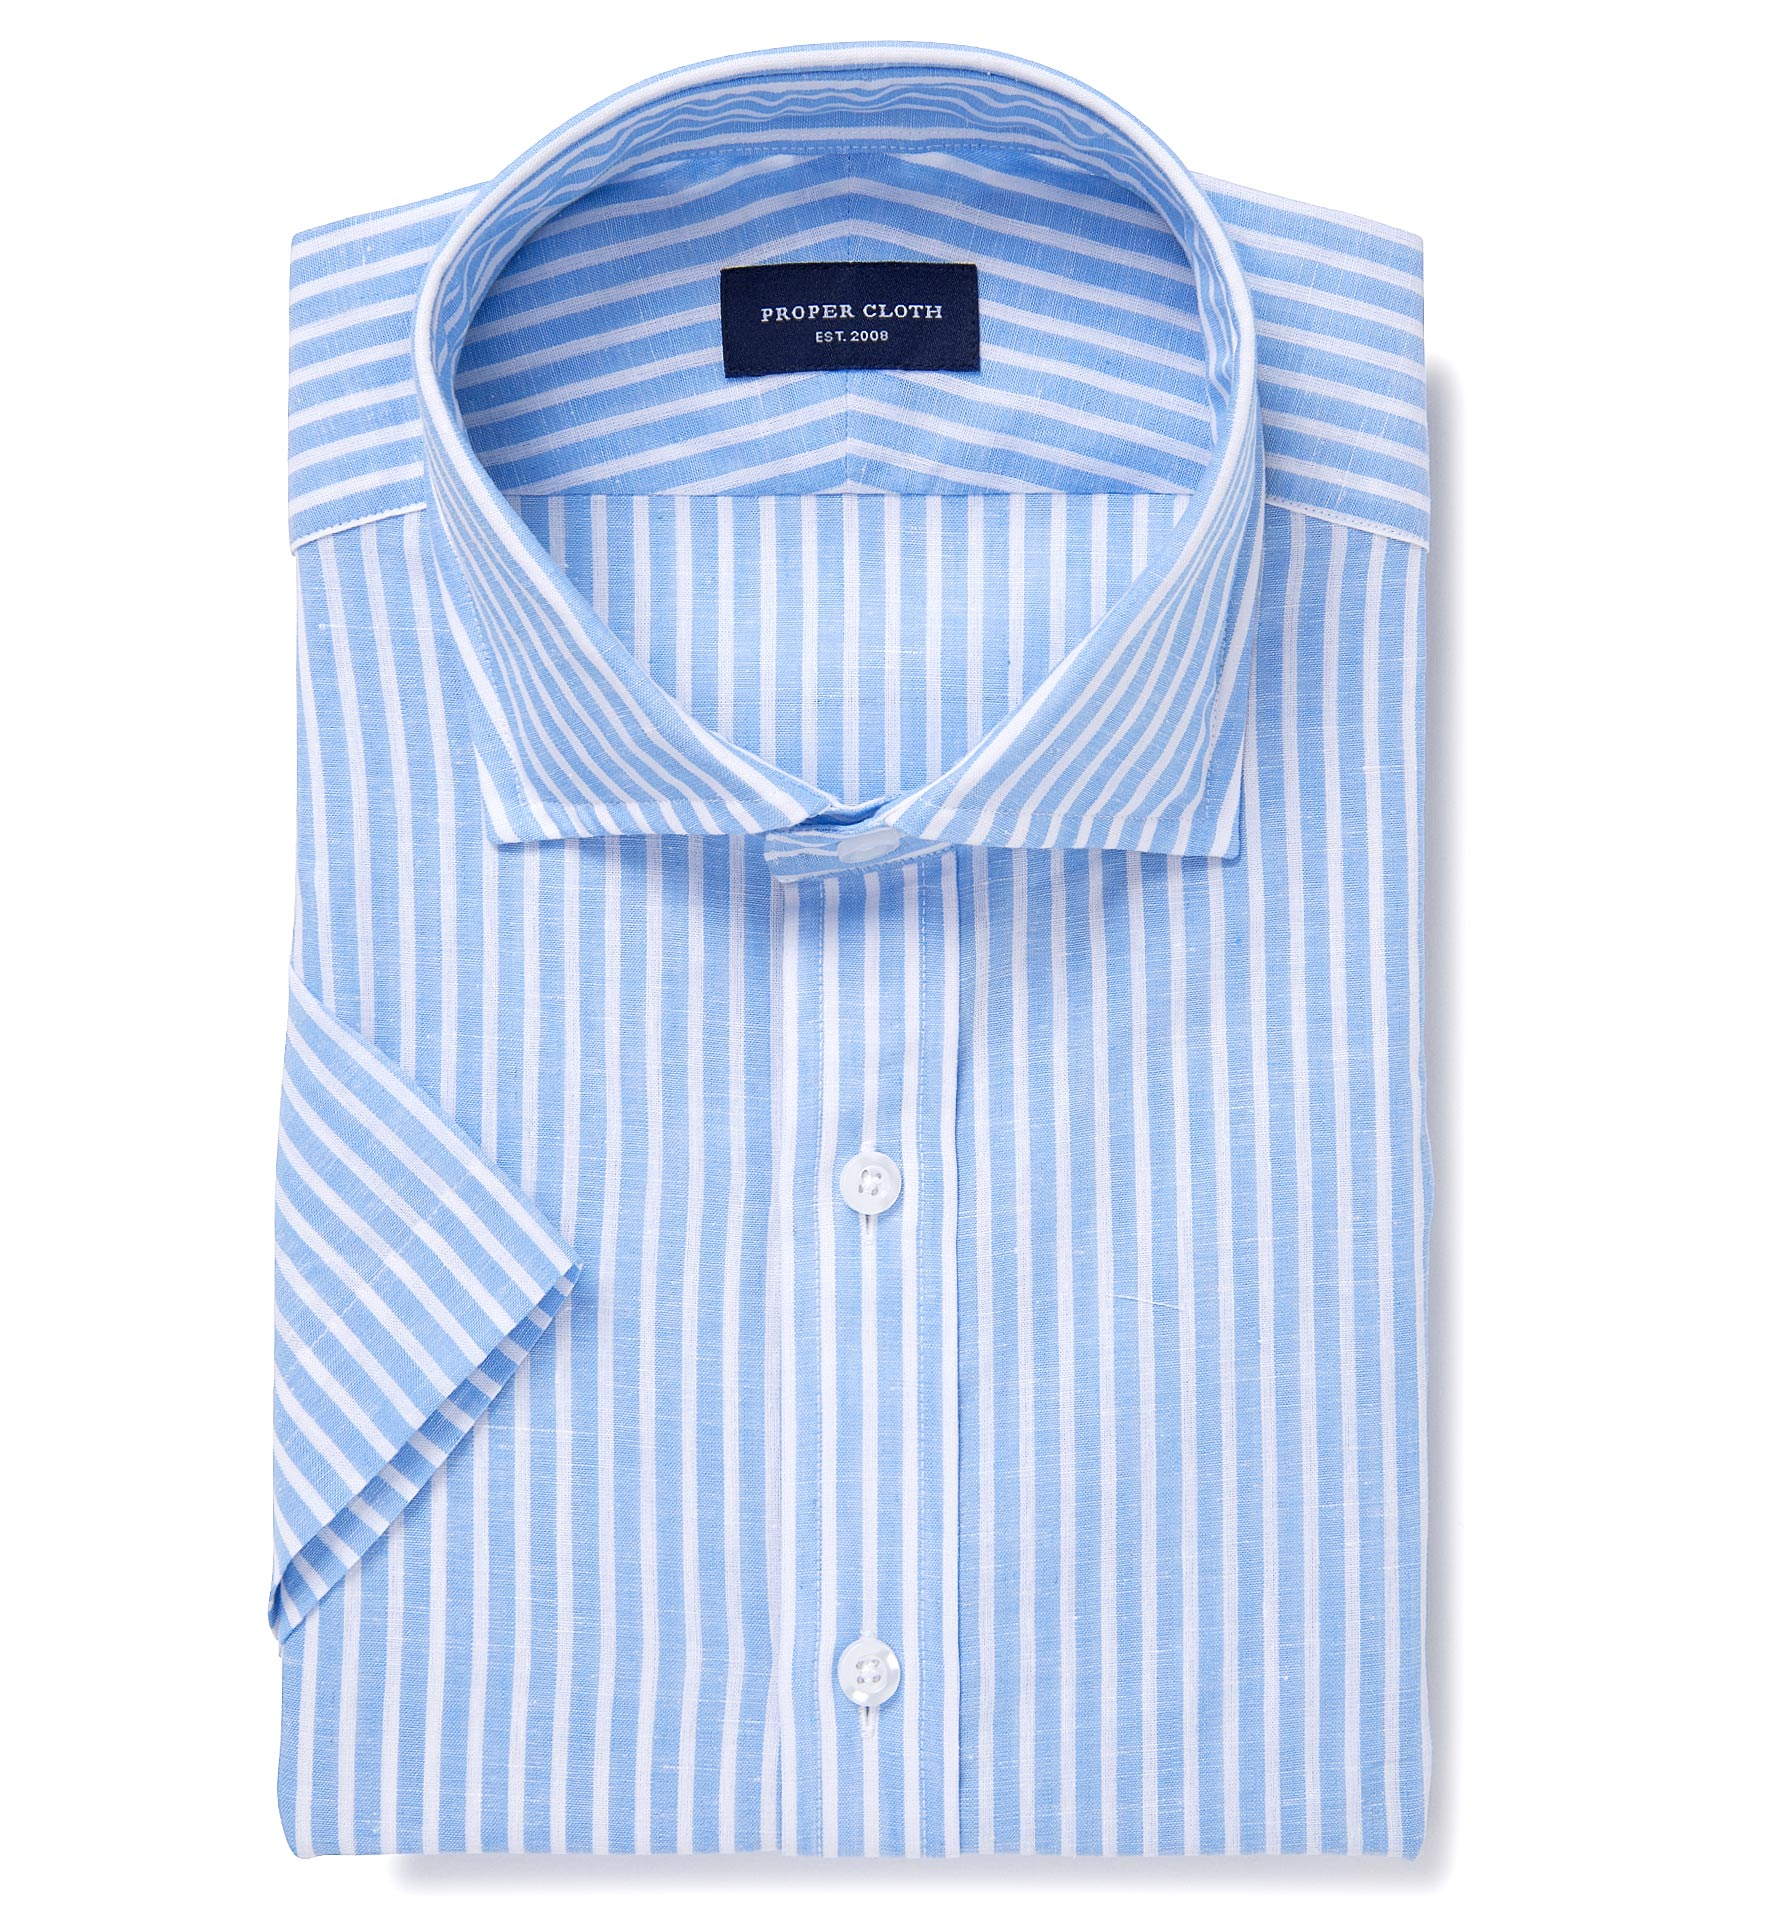 Light blue cotton linen stripe custom dress shirt by for Proper cloth custom shirt price